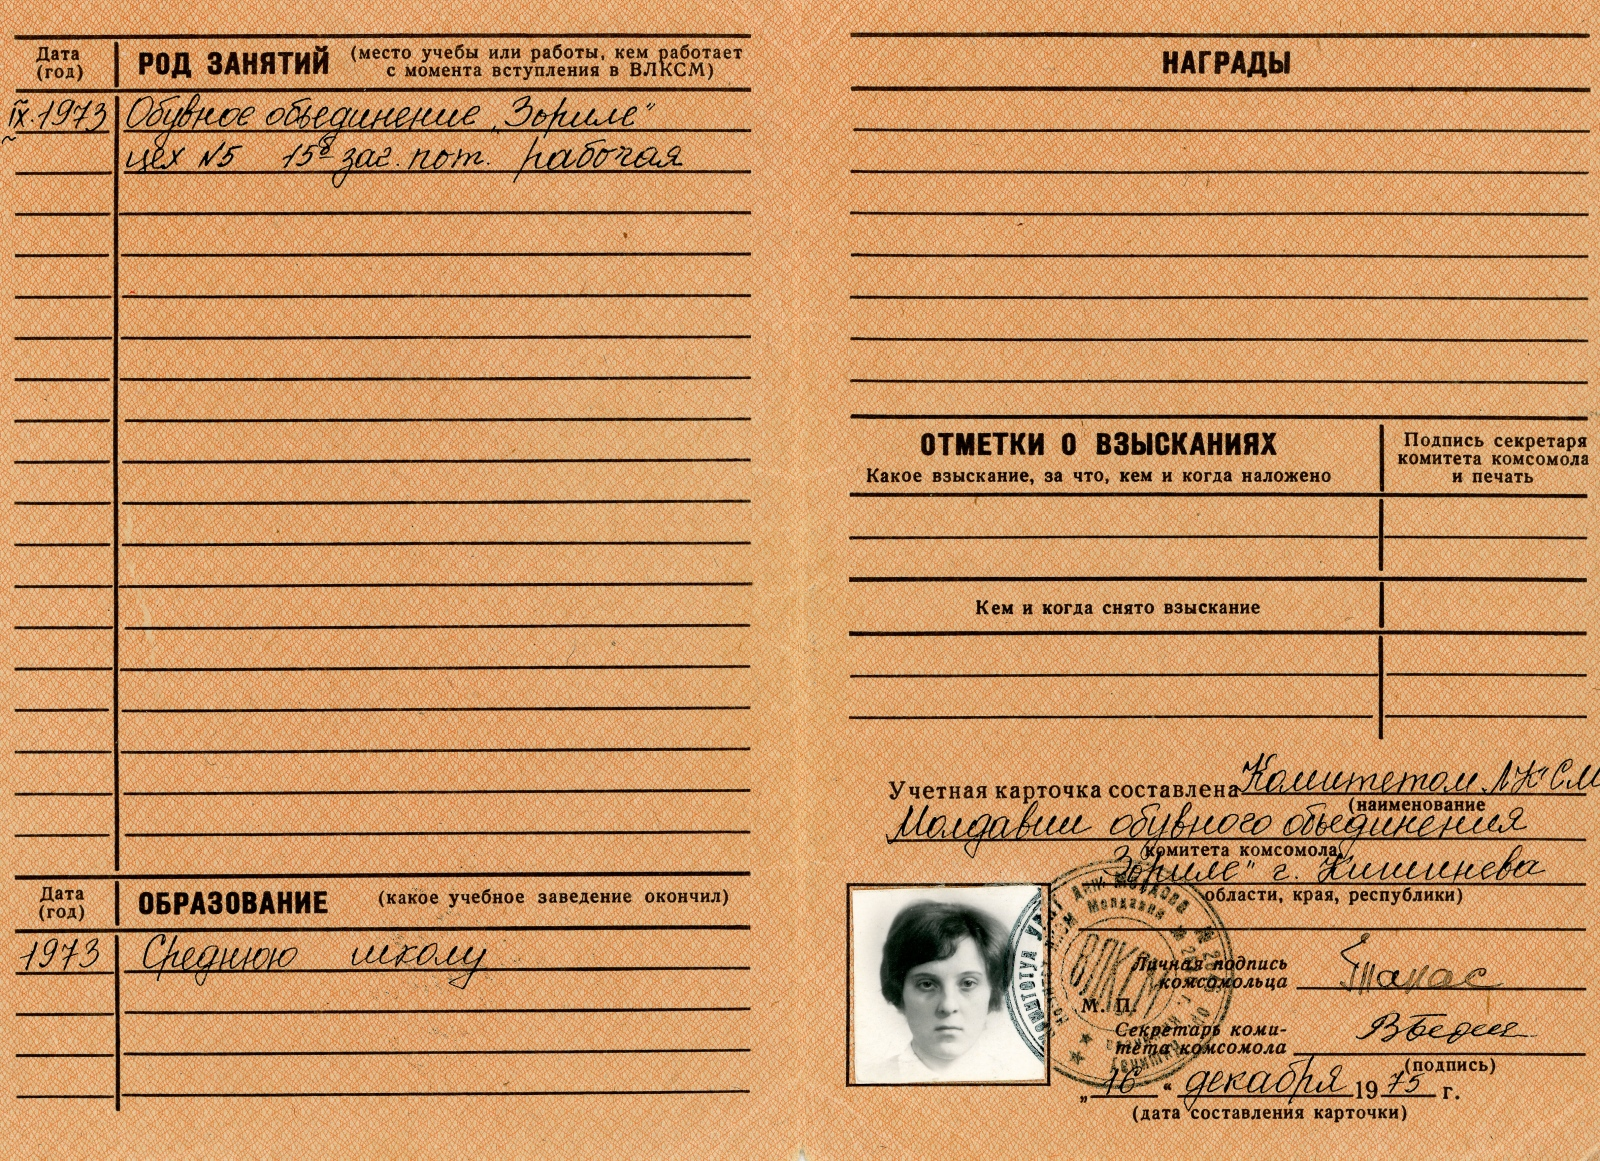 Nina Tanas's, Komsomol (All-Union Leninist Young Communist League, a political youth organization in the Soviet Union) Membership Certificate. Nina, like many deportees had to survive in the Soviet Union by playing the role of the good communist supporter, despite the fact that she did not personally support the soviet Union. To have access to resources and opportunities, young people under the Soviet Union had to join communist party organizations.